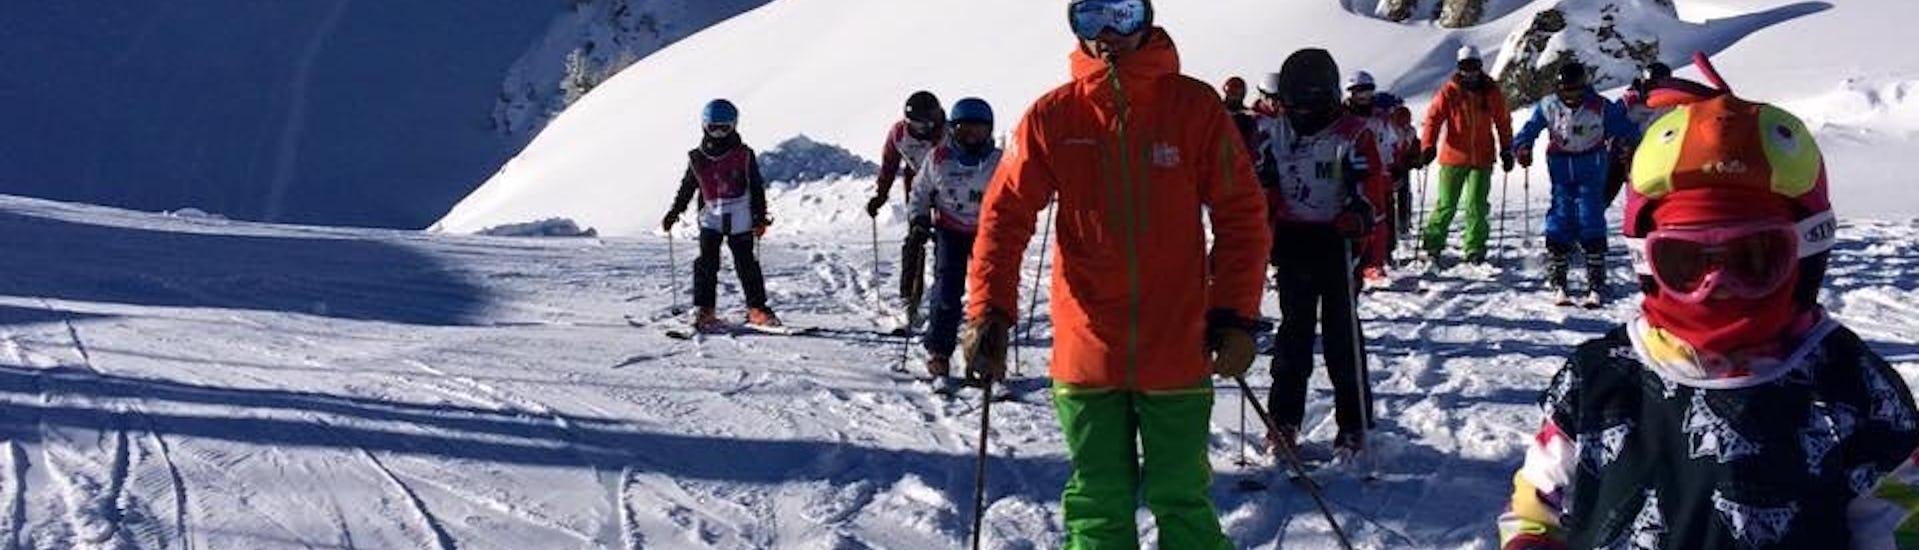 Kids Ski Lessons (5-12 years) - Arc 1950